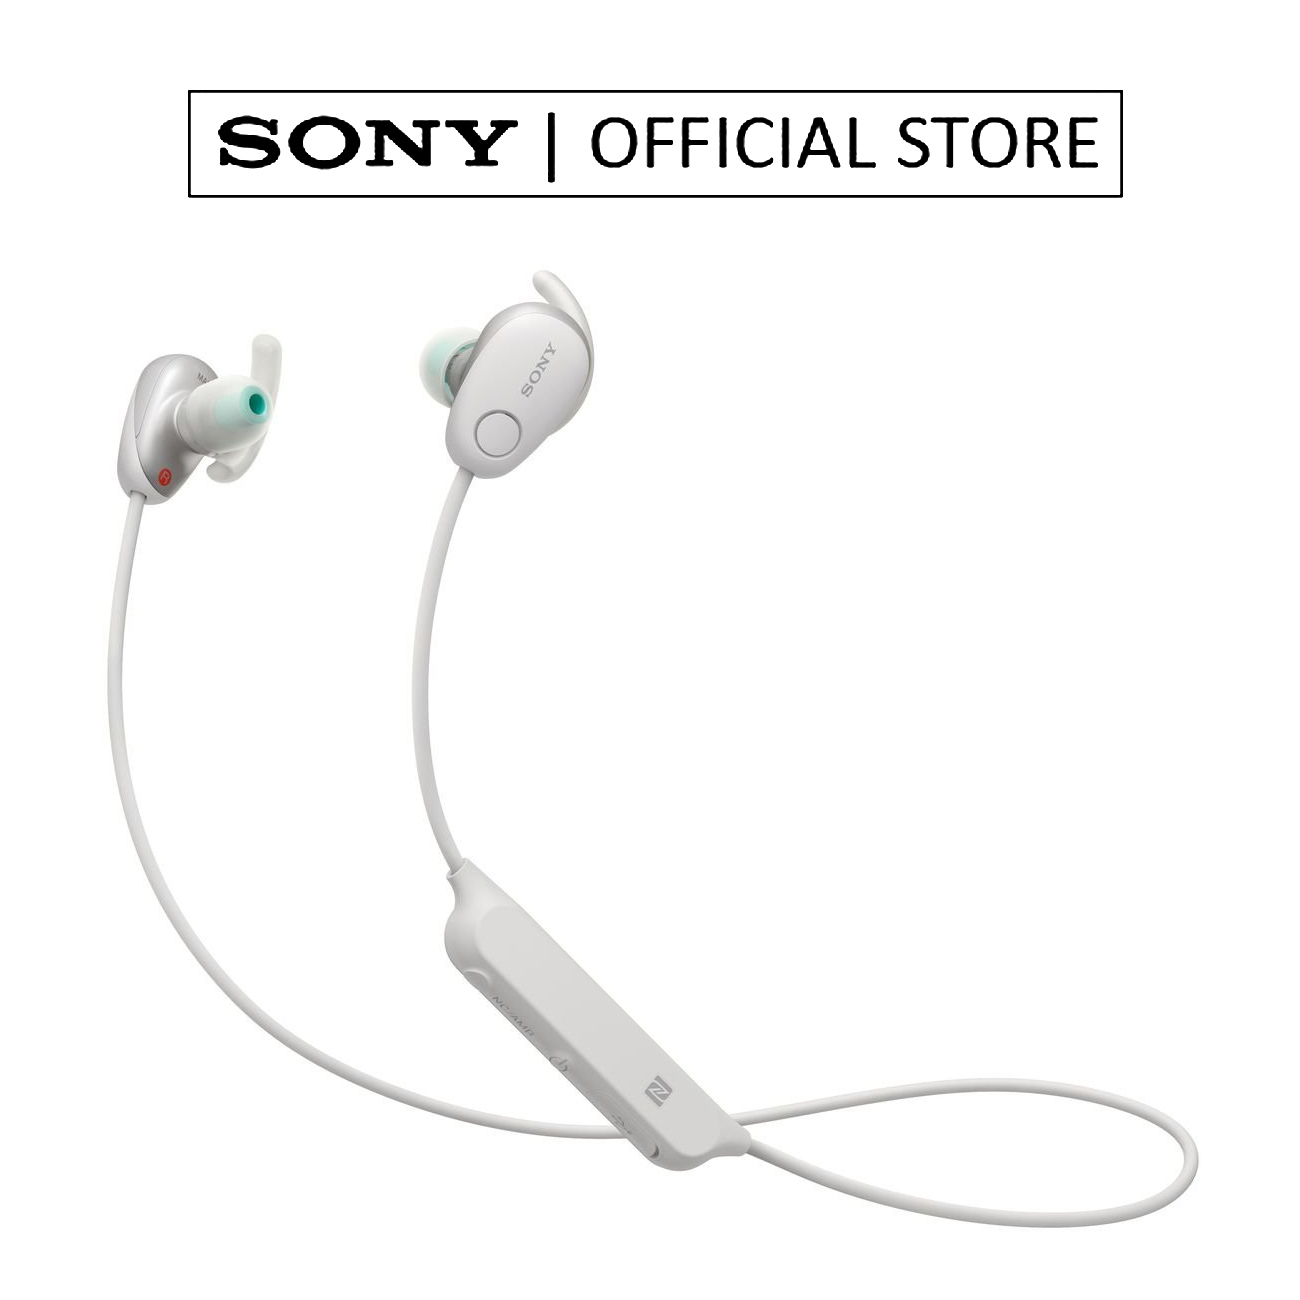 Sony WI-SP600N Wireless Noise-Cancelling In-Ear Sports Headphones